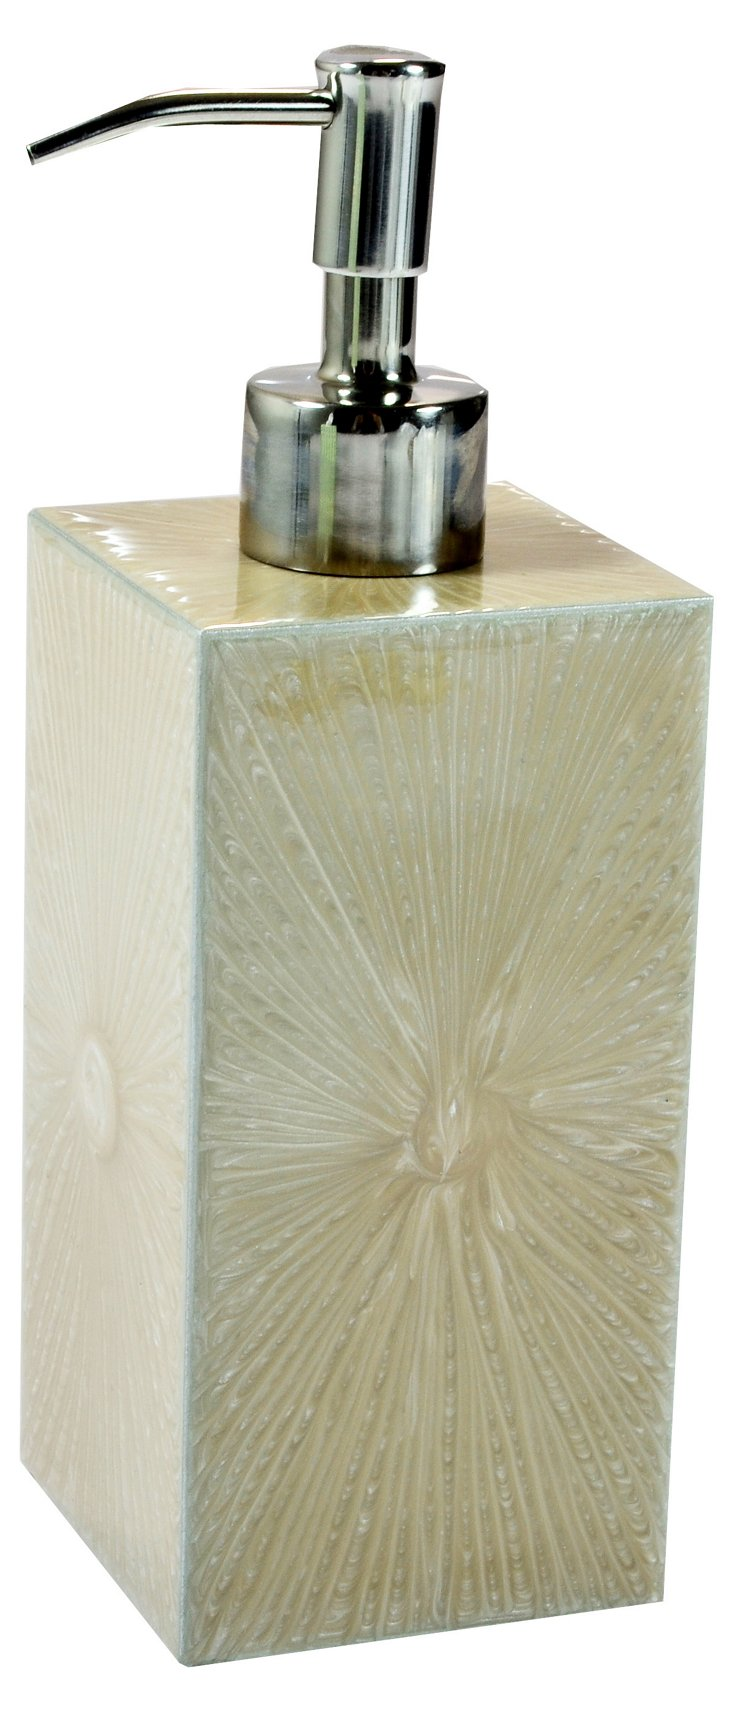 Chateau Lotion Pump, Putty/Silver